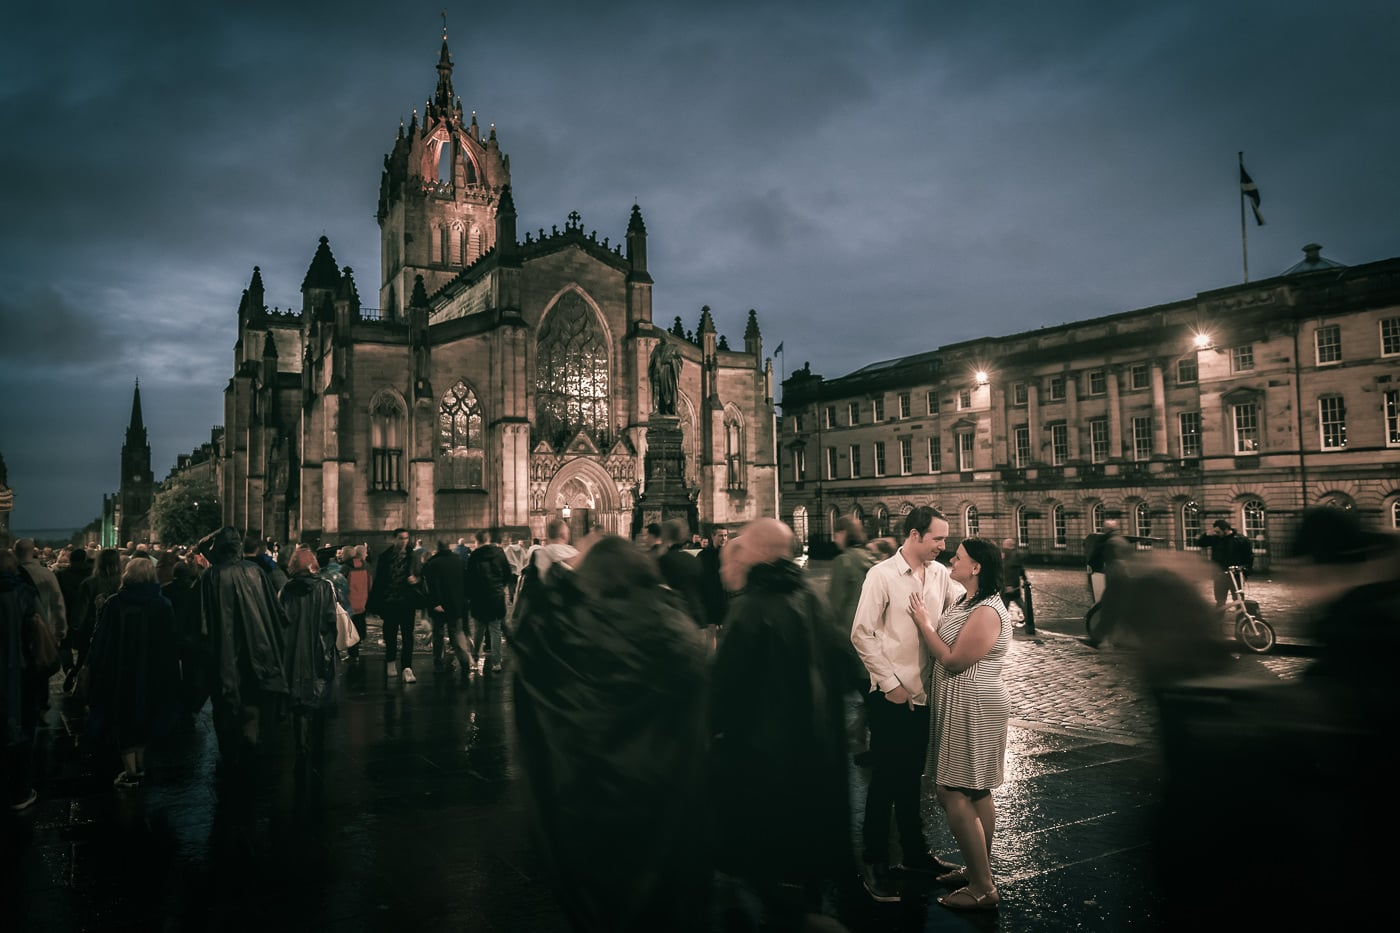 The couple stands in the middle of the crowd in front of St Giles Cathedral